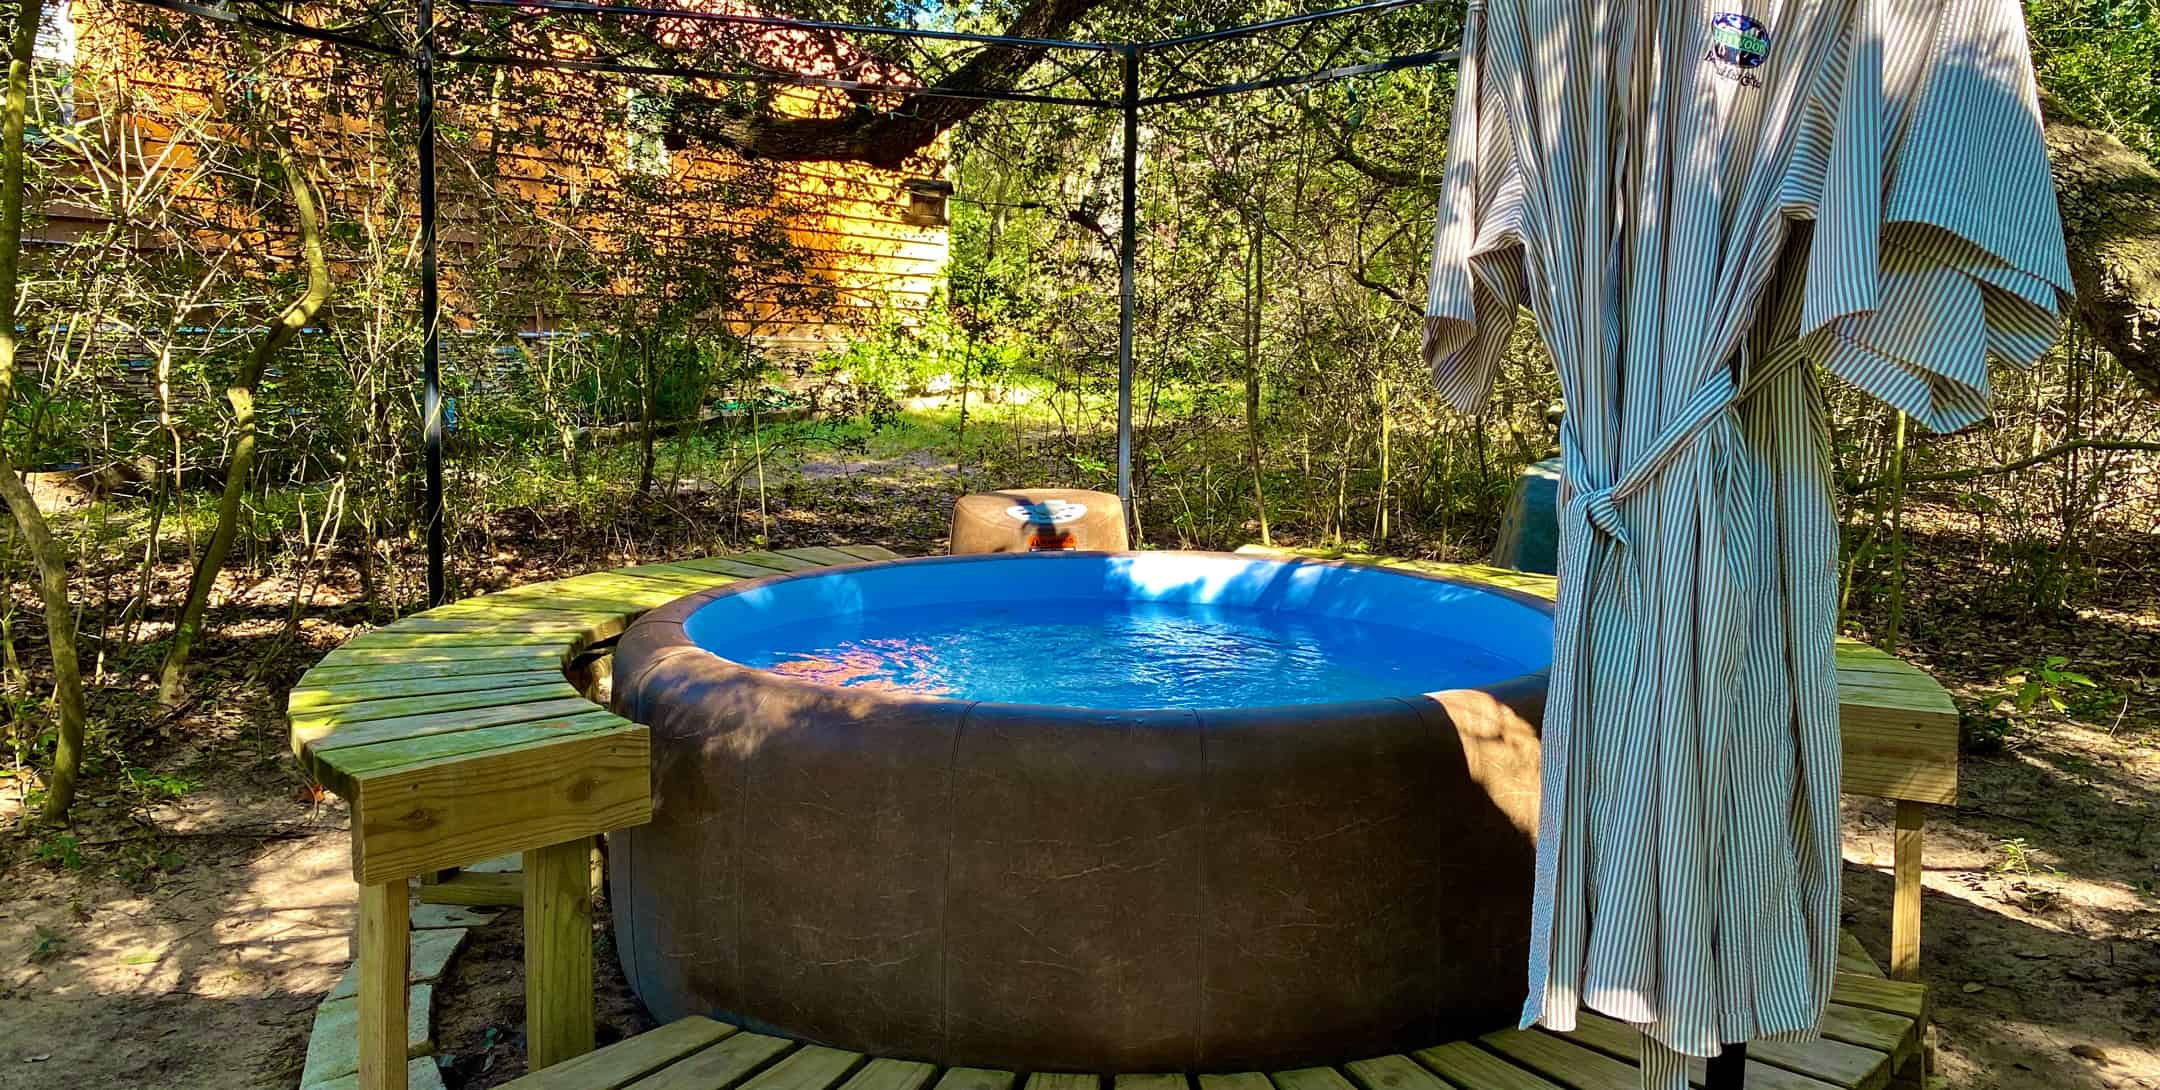 Soak and relax in the Sunset Pond Cabin hot tub in a private secluded setting